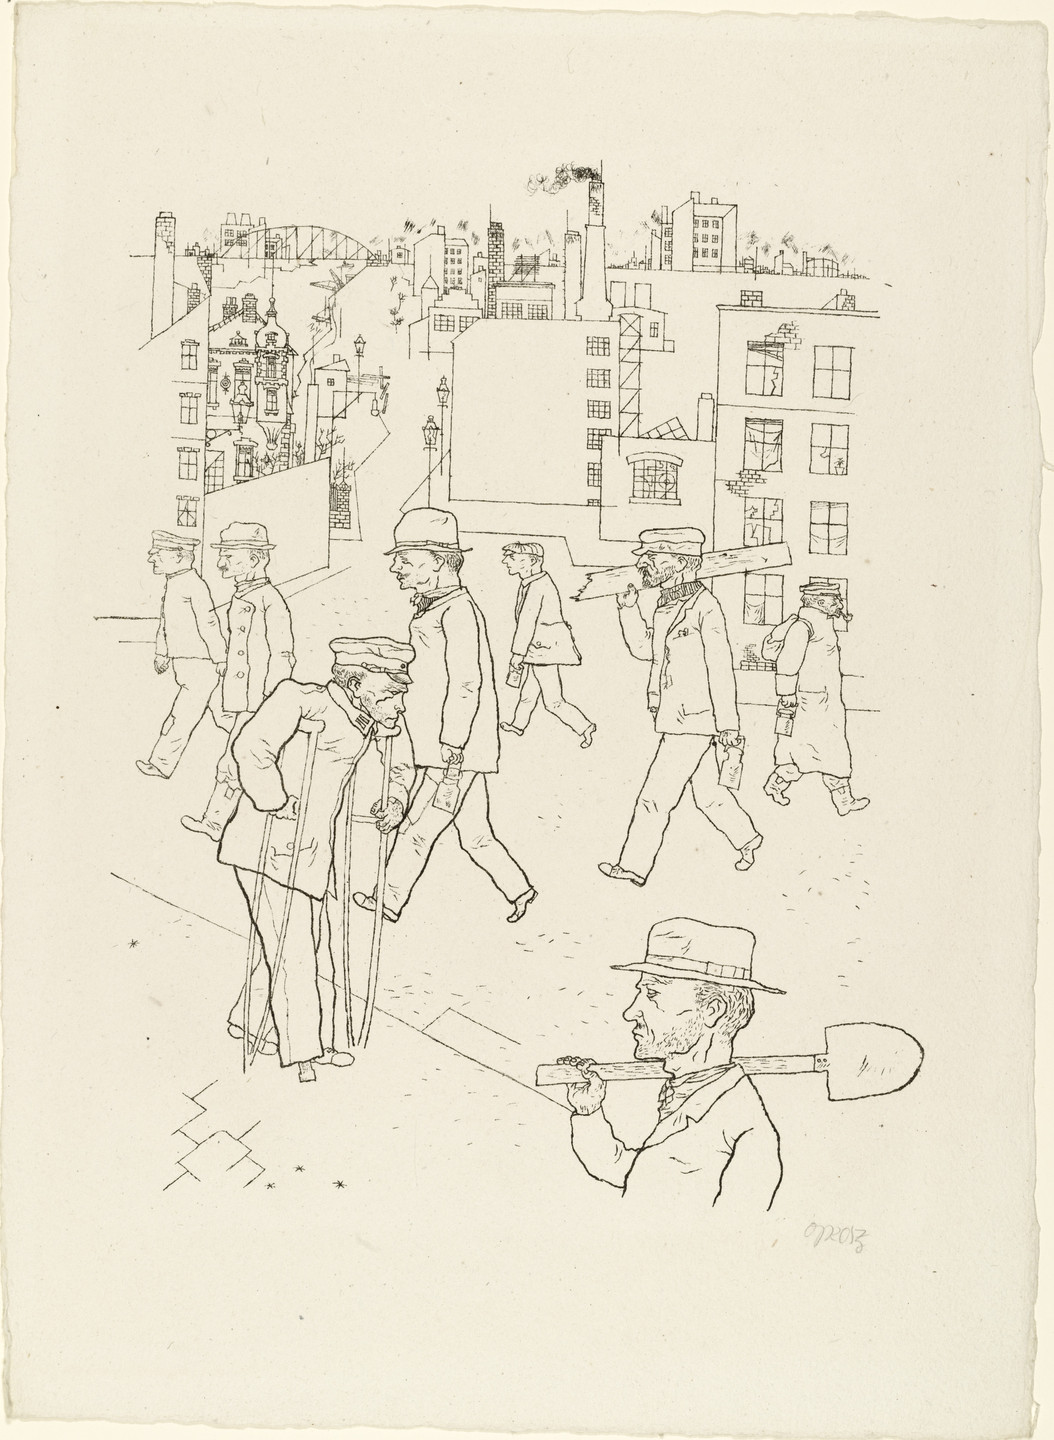 George Grosz. War Invalid and Workers from In the Shadows (Im Schatten). c. 1920, published 1921